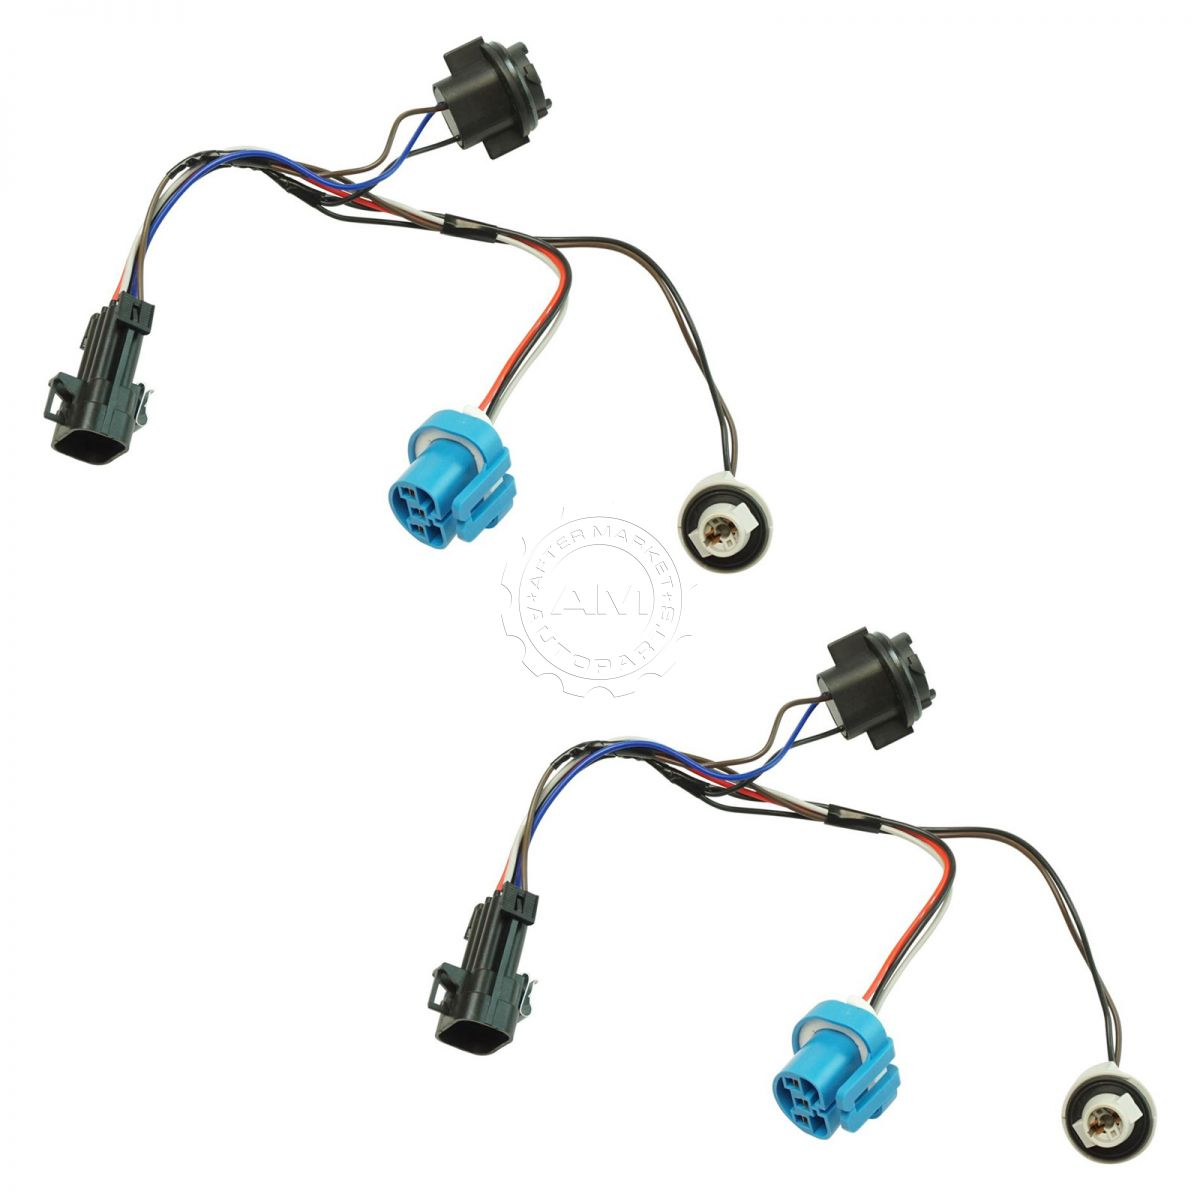 Dorman Headlight Wiring Harness Side Pair for Chevy Cobalt Pontiac G5  Pursuit